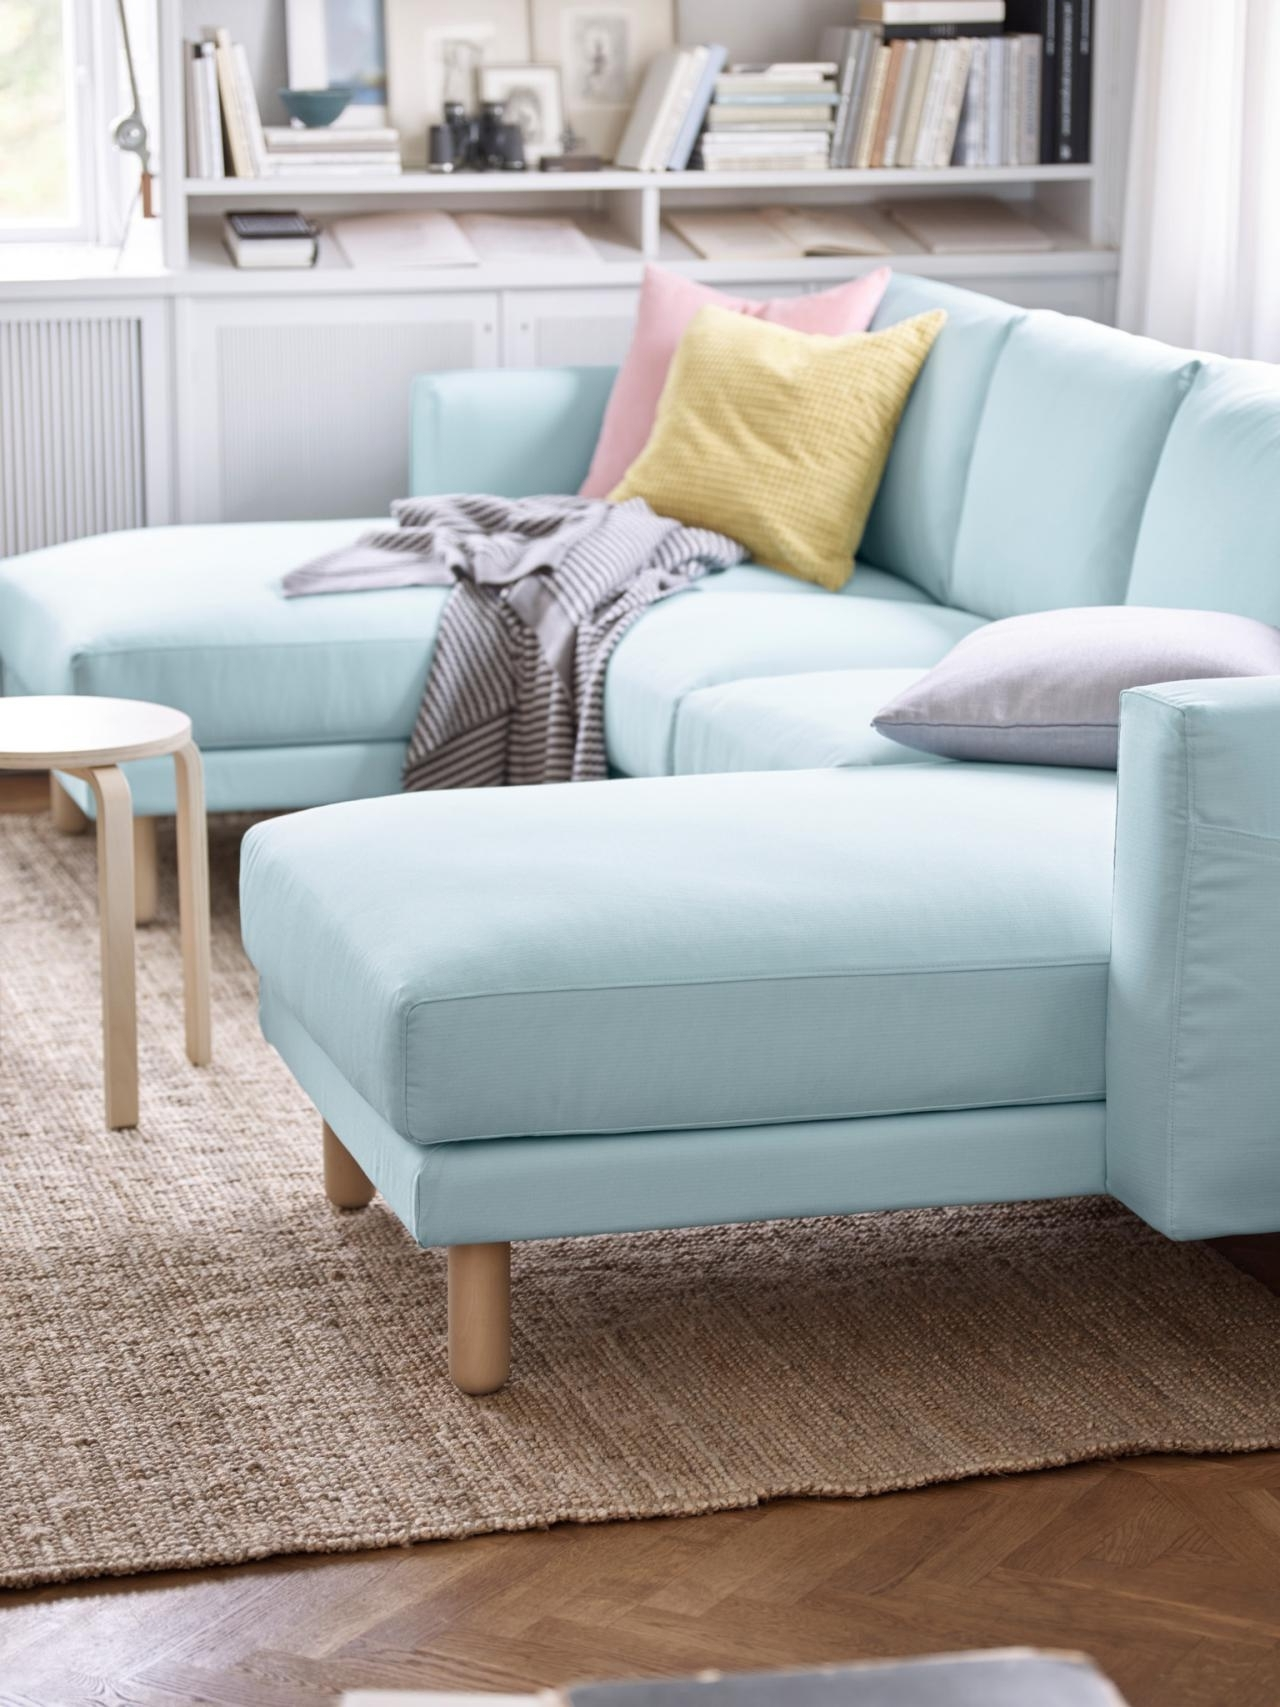 5 Apartment Sized Sofas That Are Lifesavers (View 2 of 20)